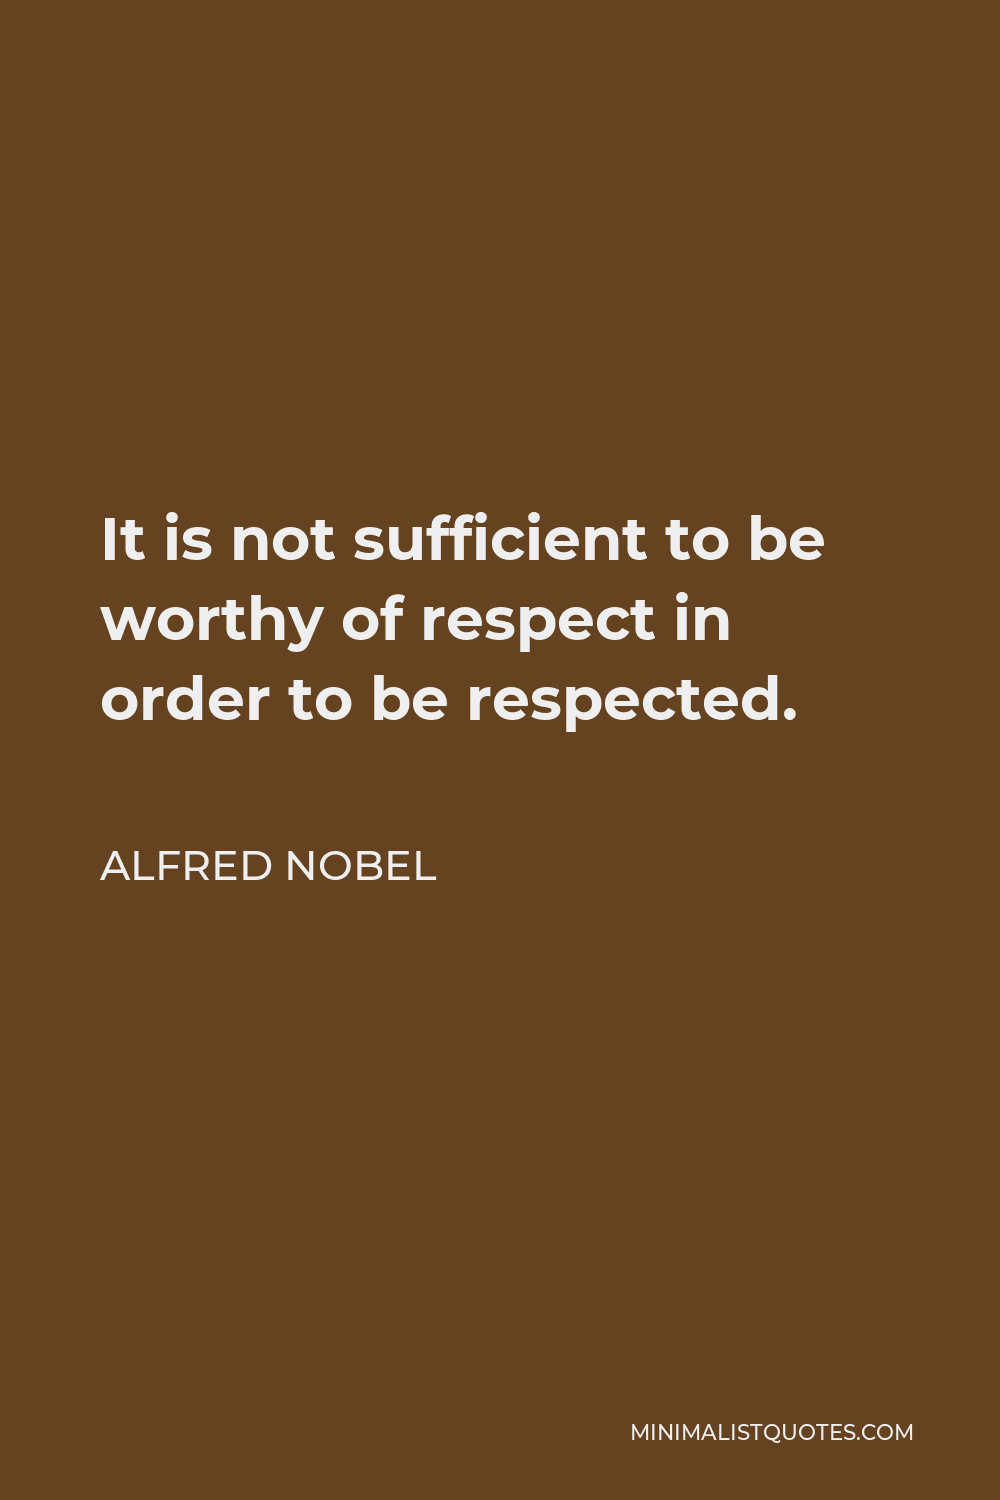 Alfred Nobel Quote - It is not sufficient to be worthy of respect in order to be respected.